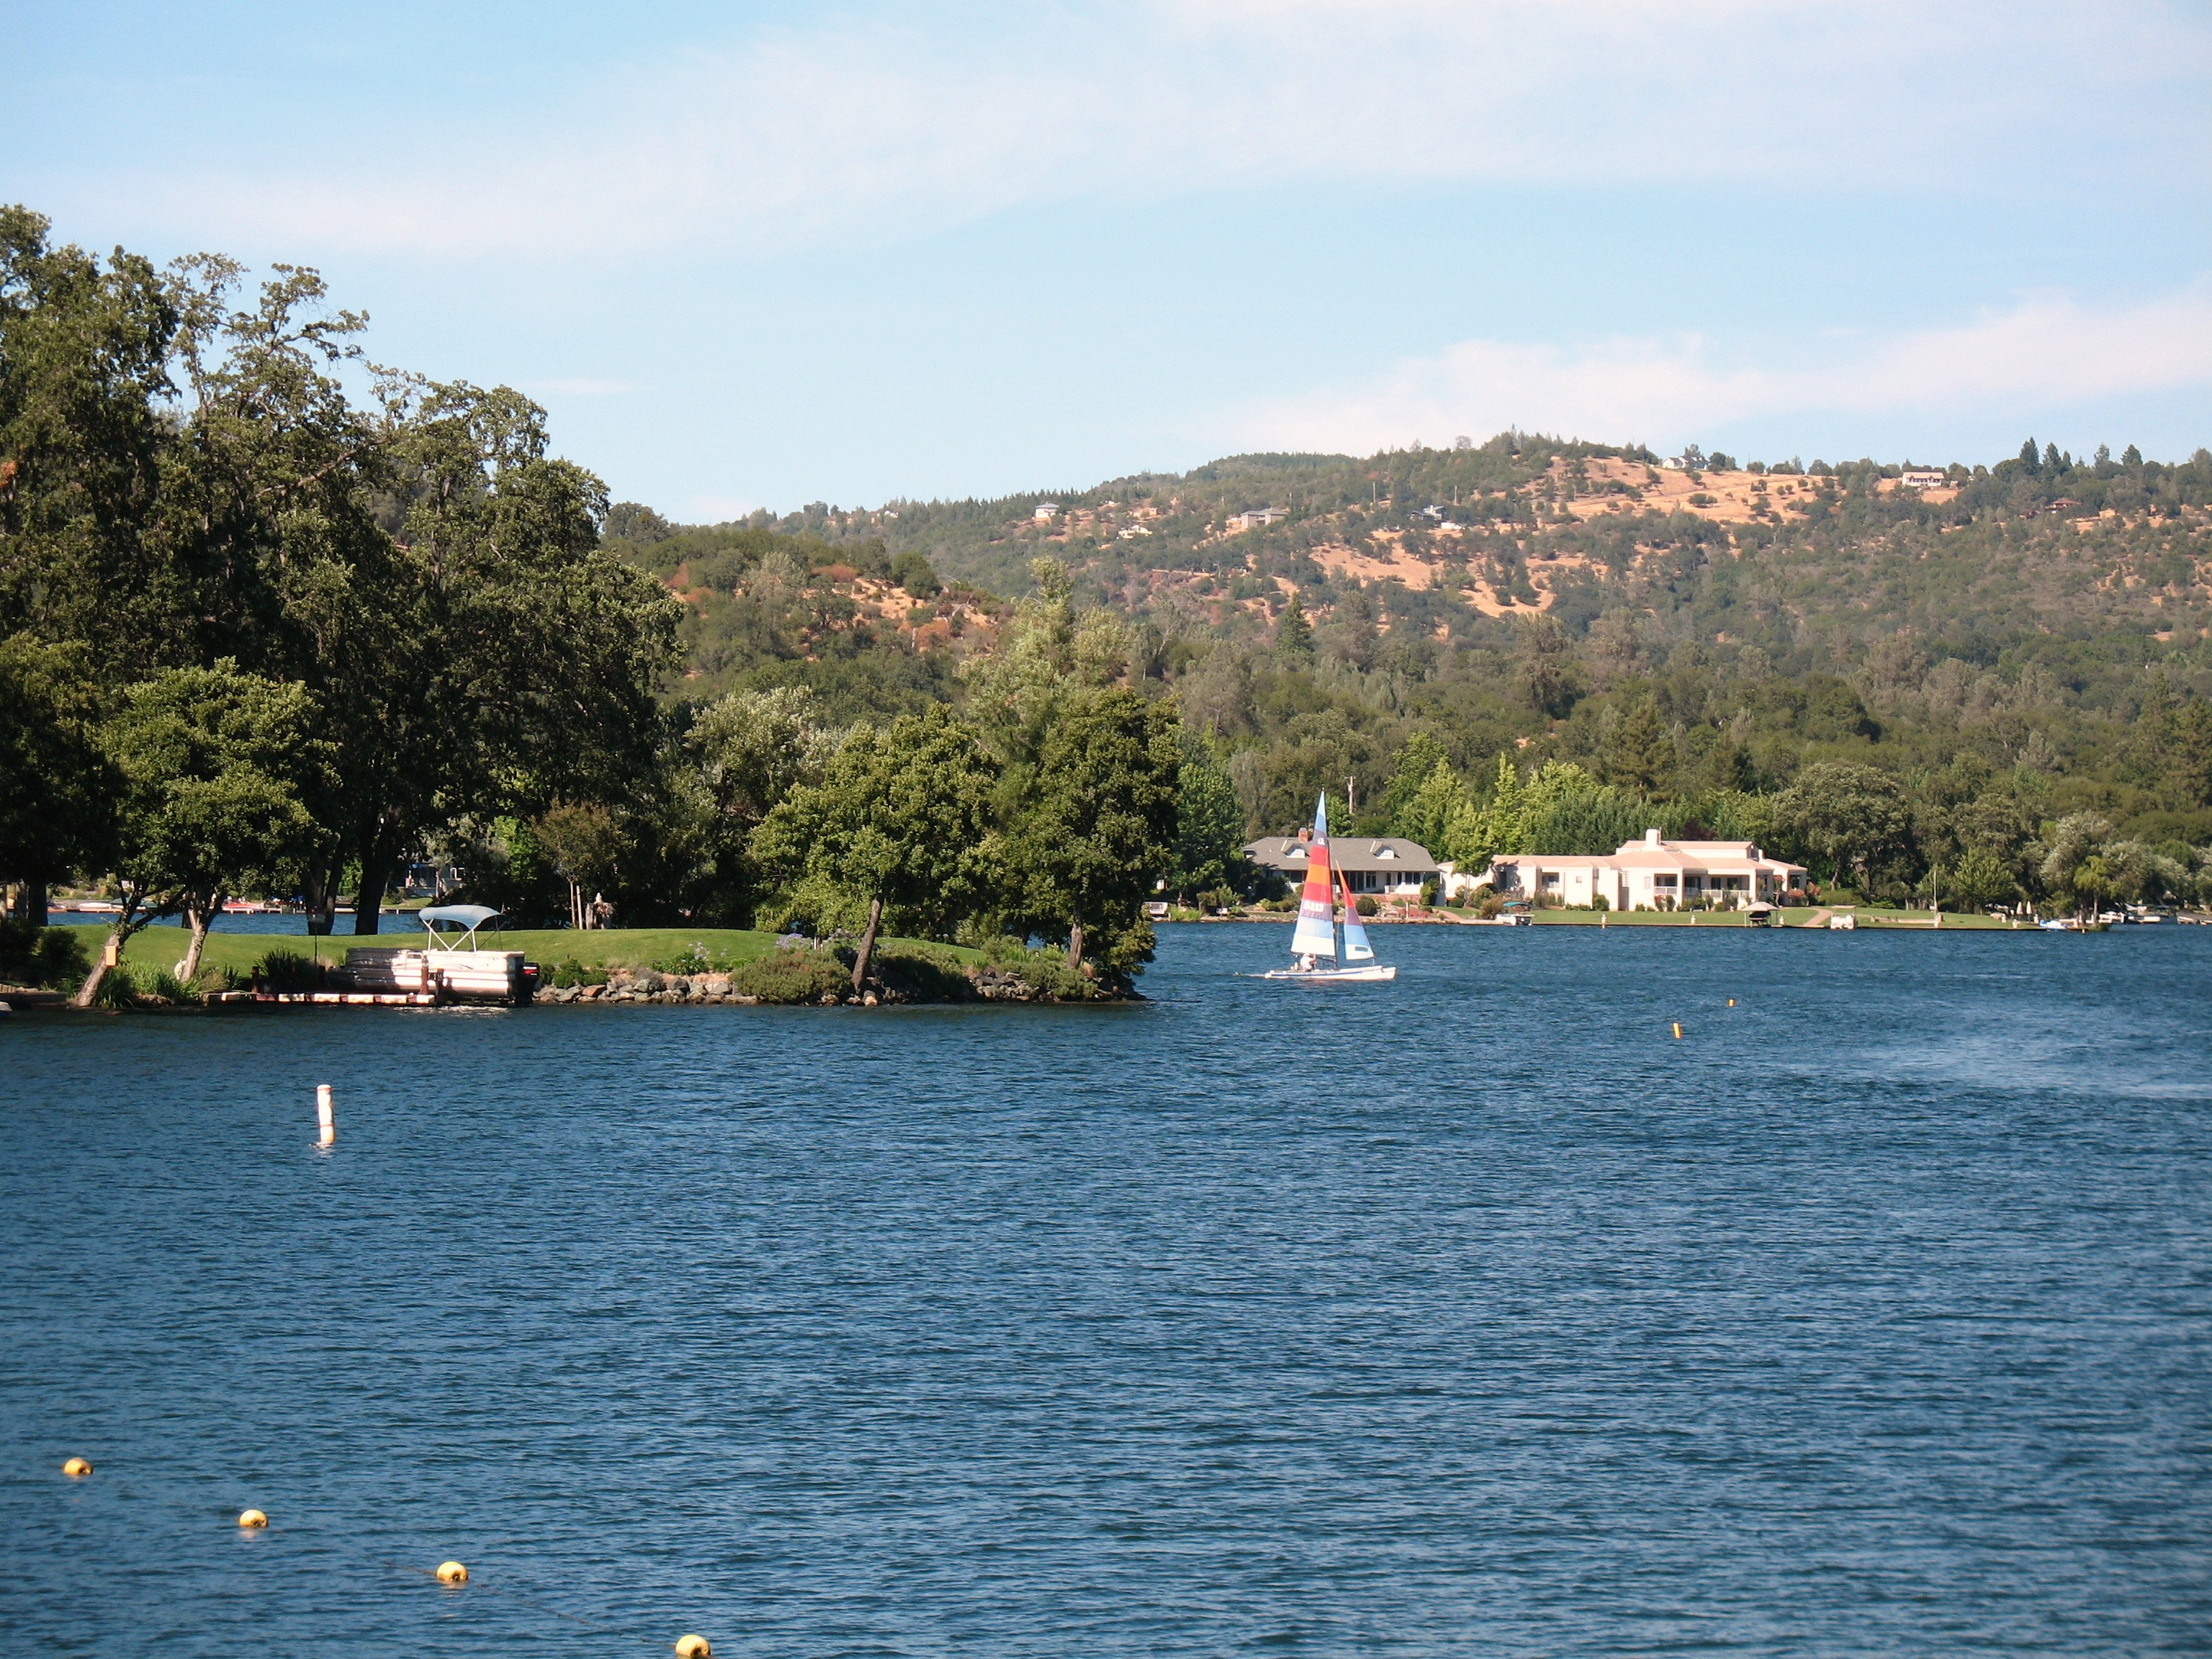 lake wildwood homes for sale penn valley ca